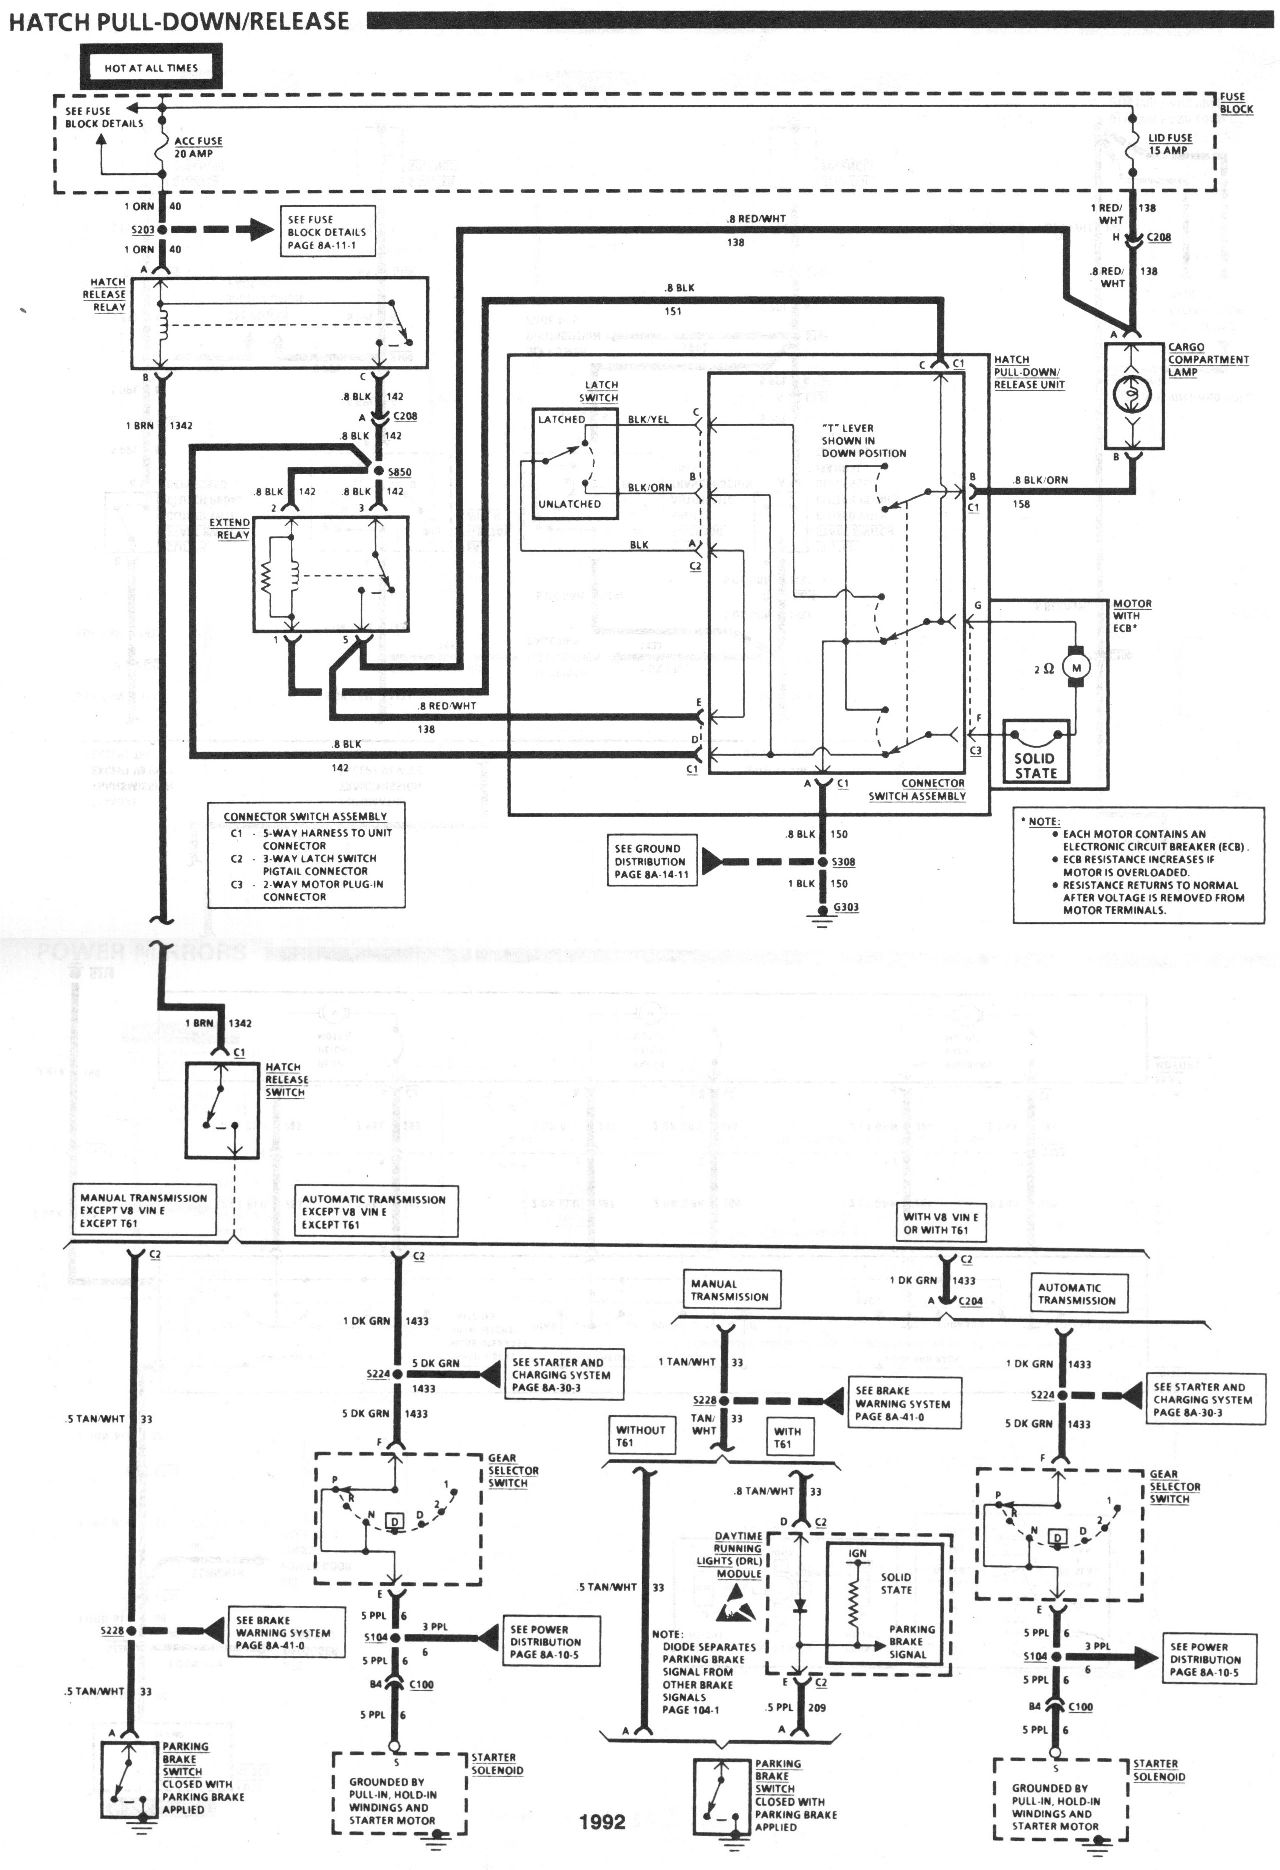 Chevrolet G20 Fuse Box Diagram Wiring Schematic